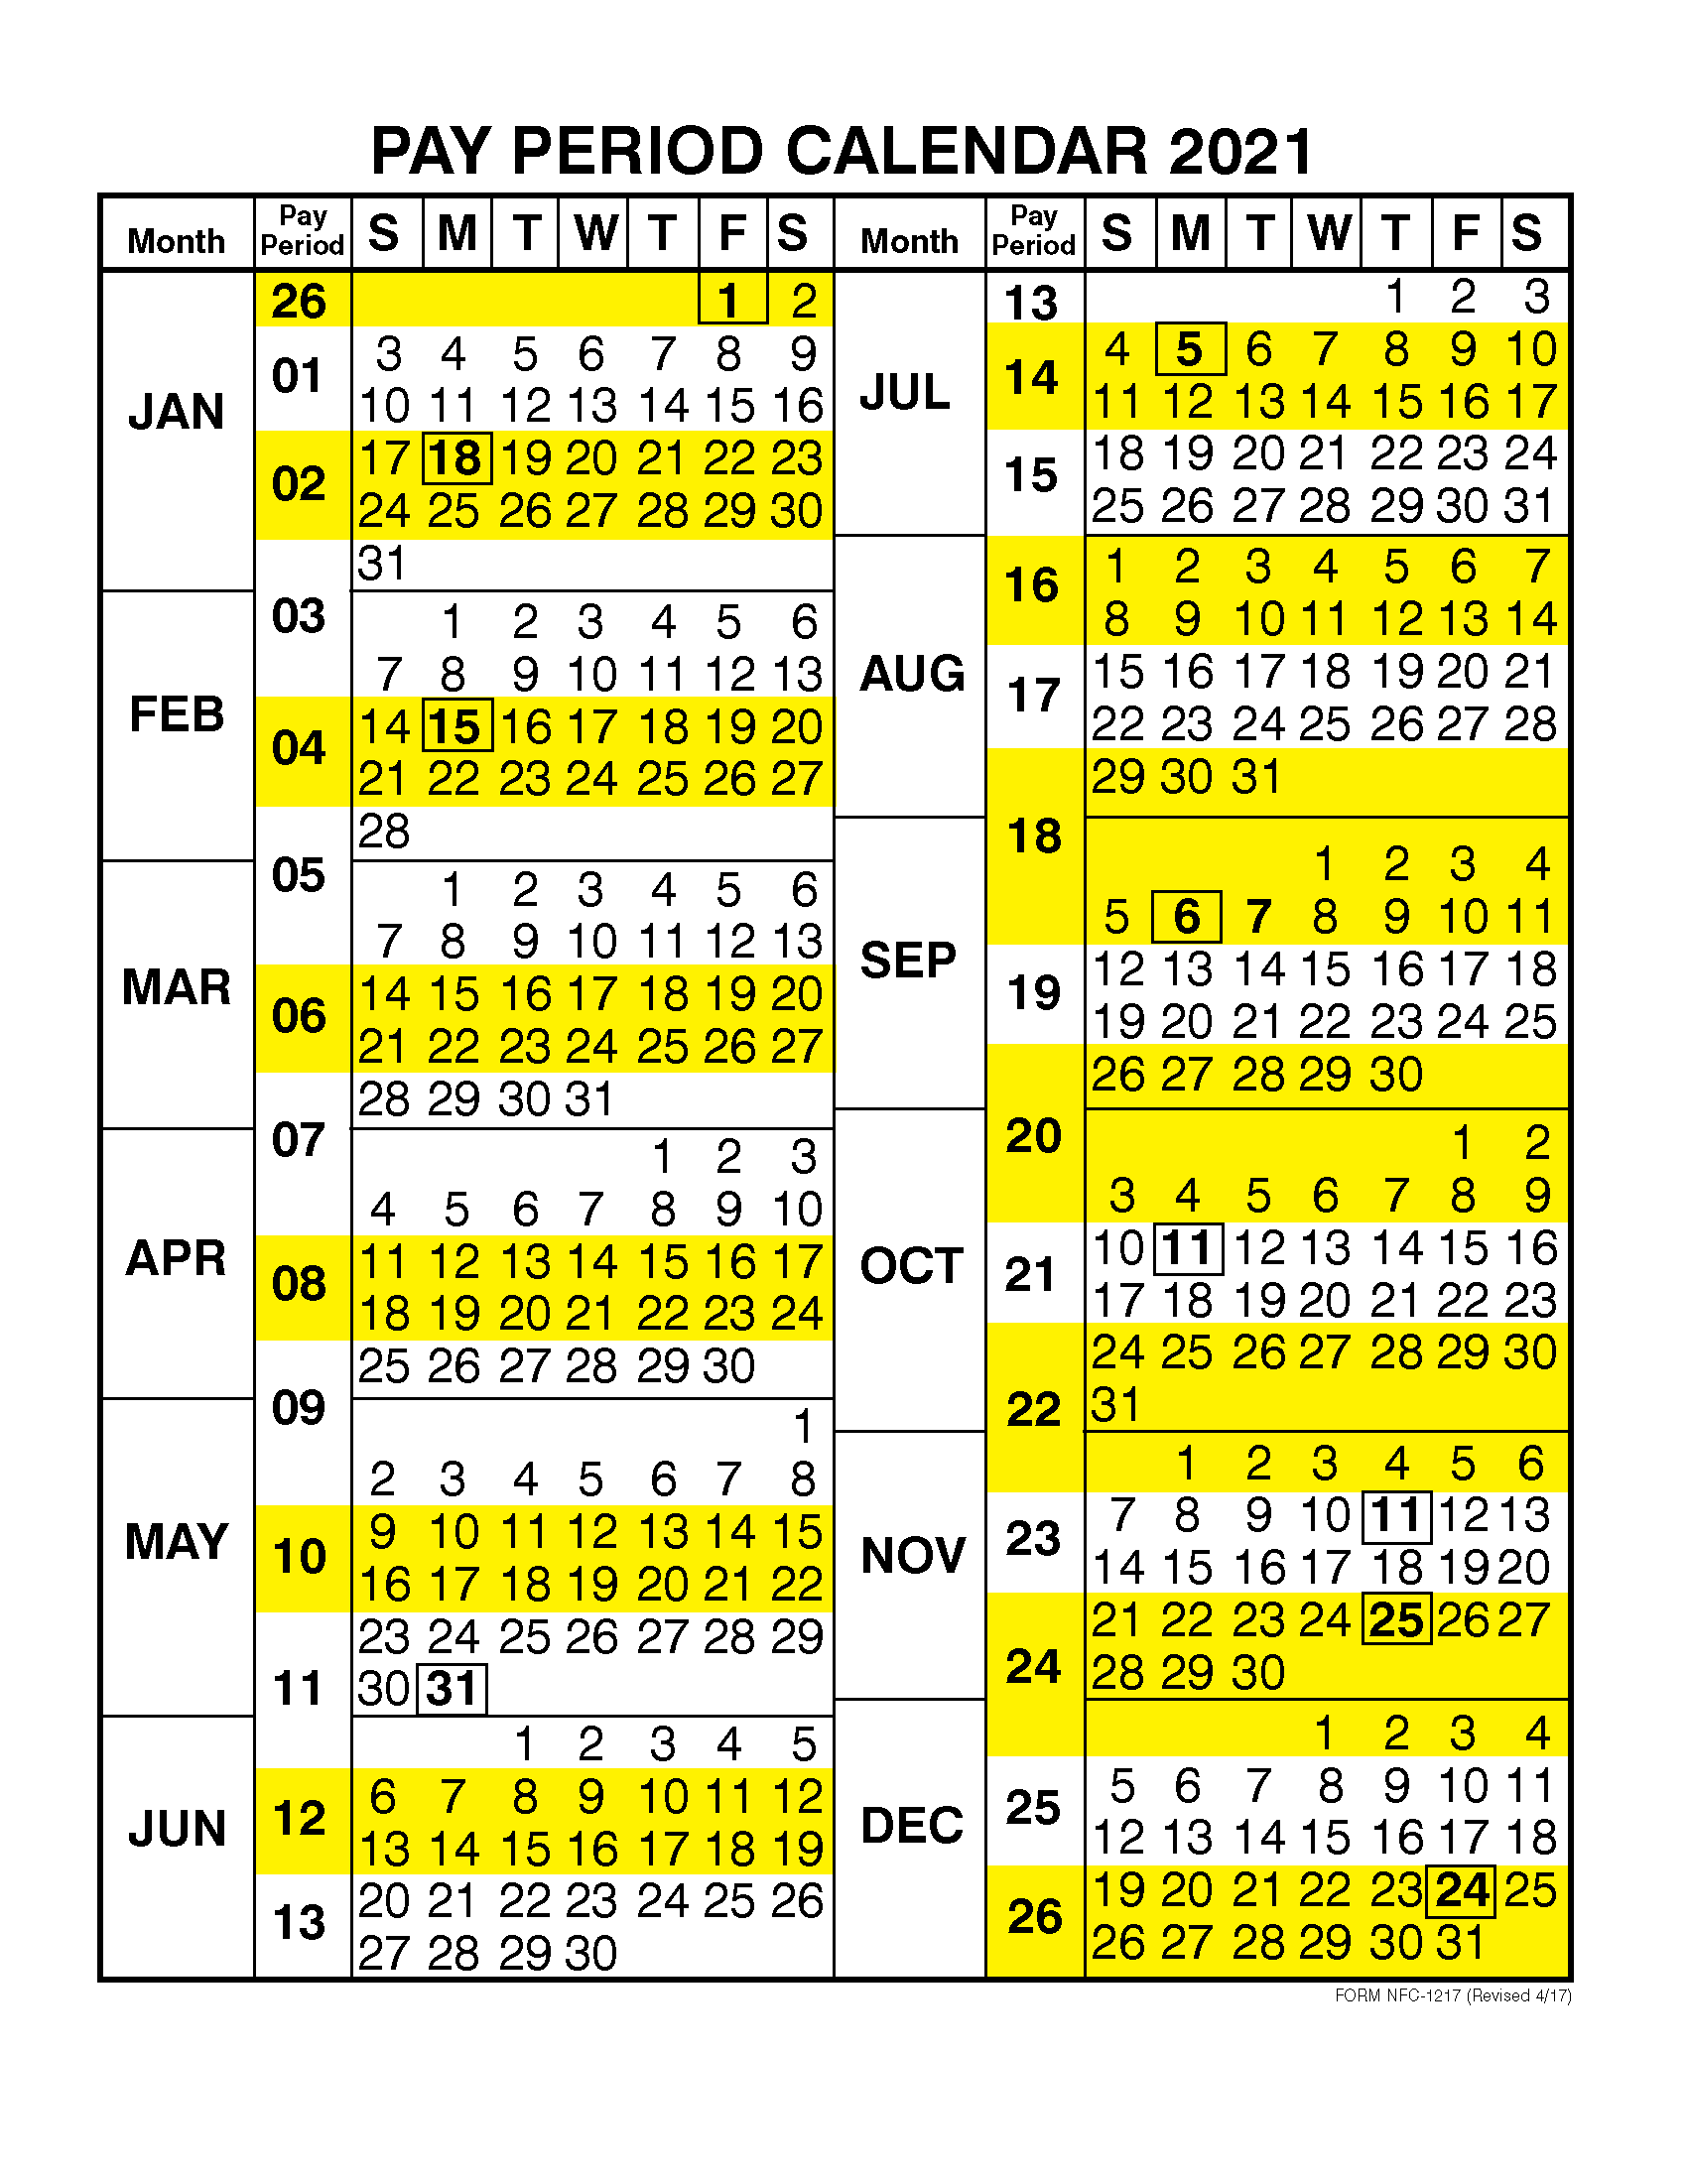 Payday Calendar 2021 Pay Period Calendar 2021 by Calendar Year – Free Printable 2020